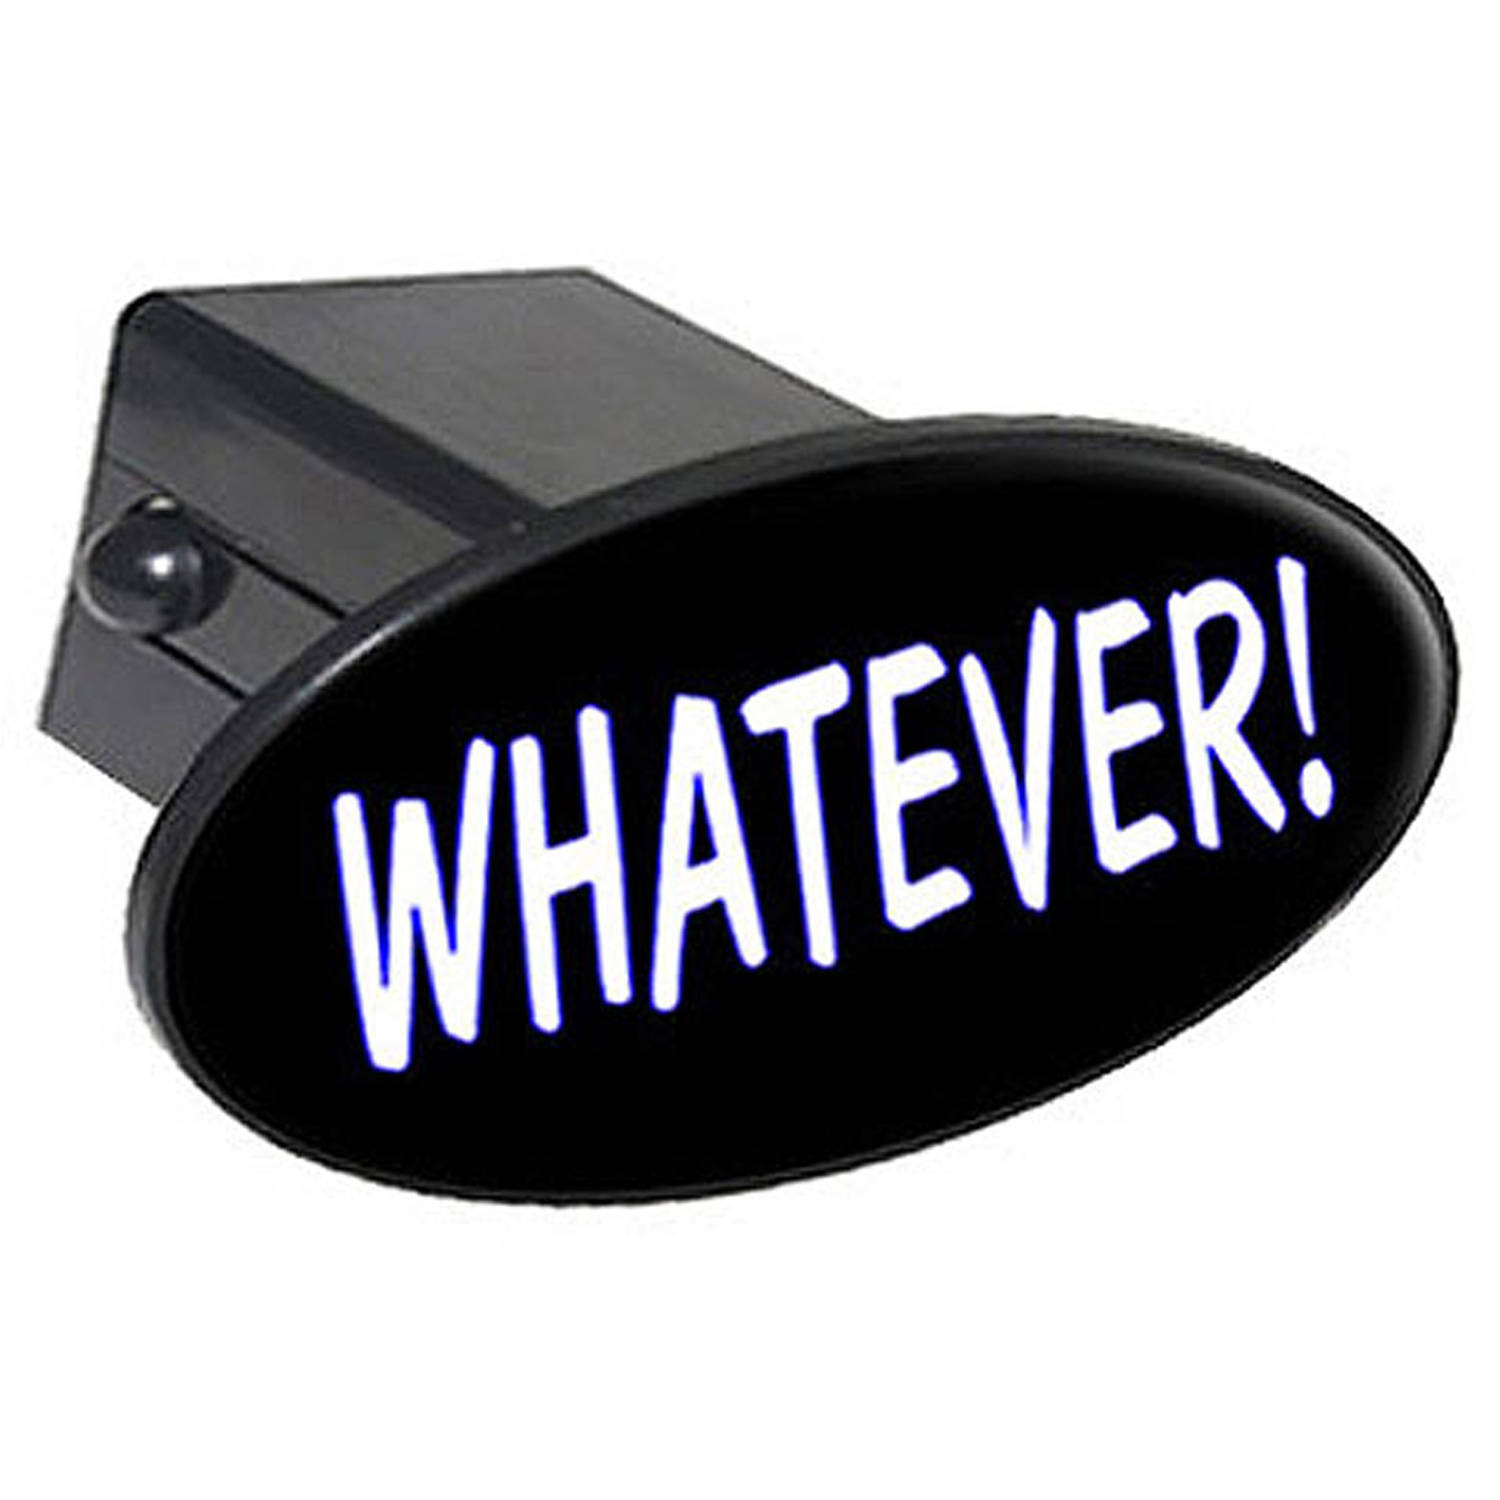 "Whatever, Funny 2"" Oval Tow Trailer Hitch Cover Plug Insert"